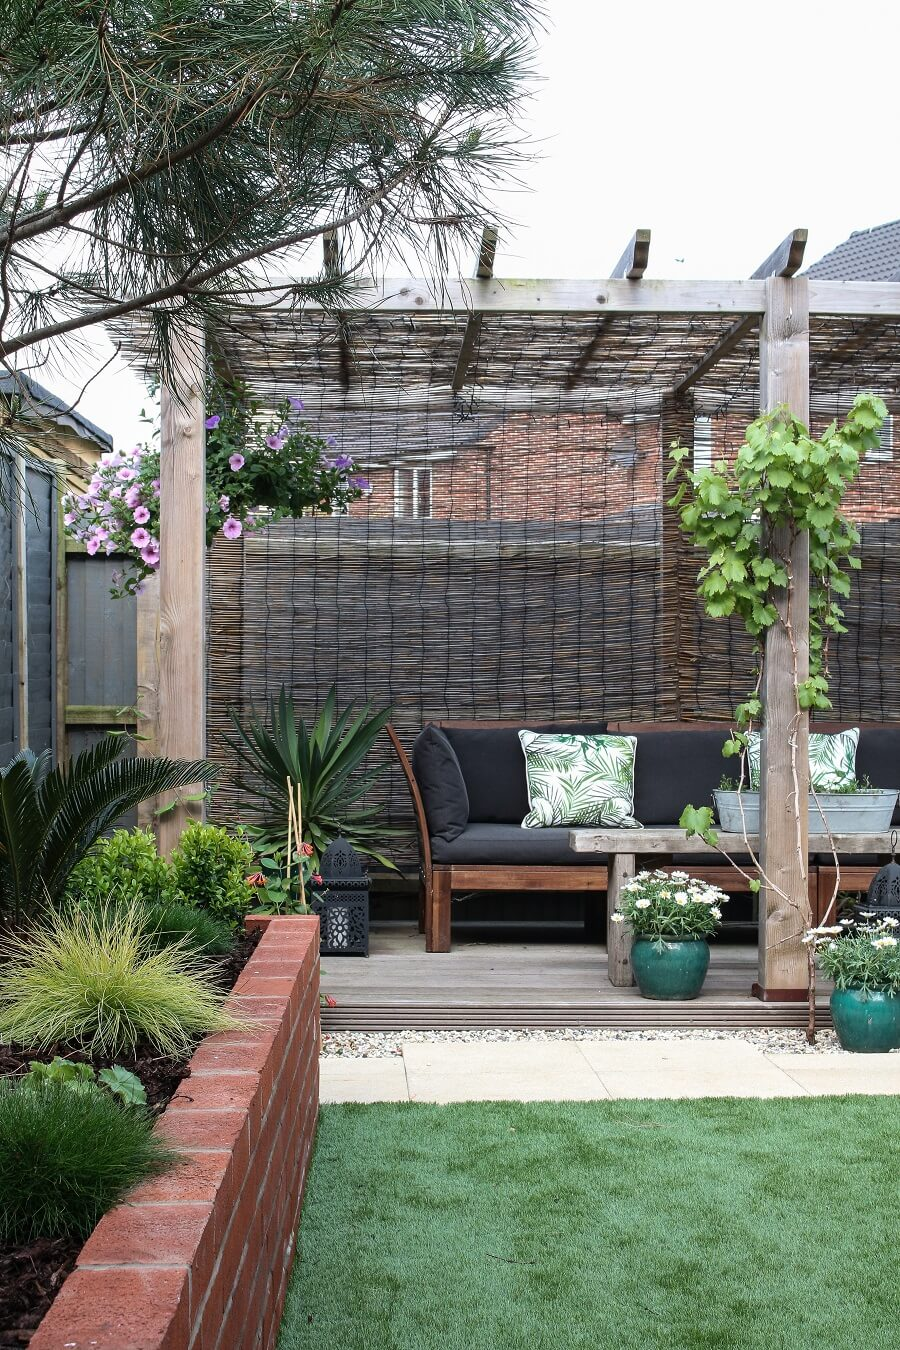 Intimate Pergola and Raised Garden Bed